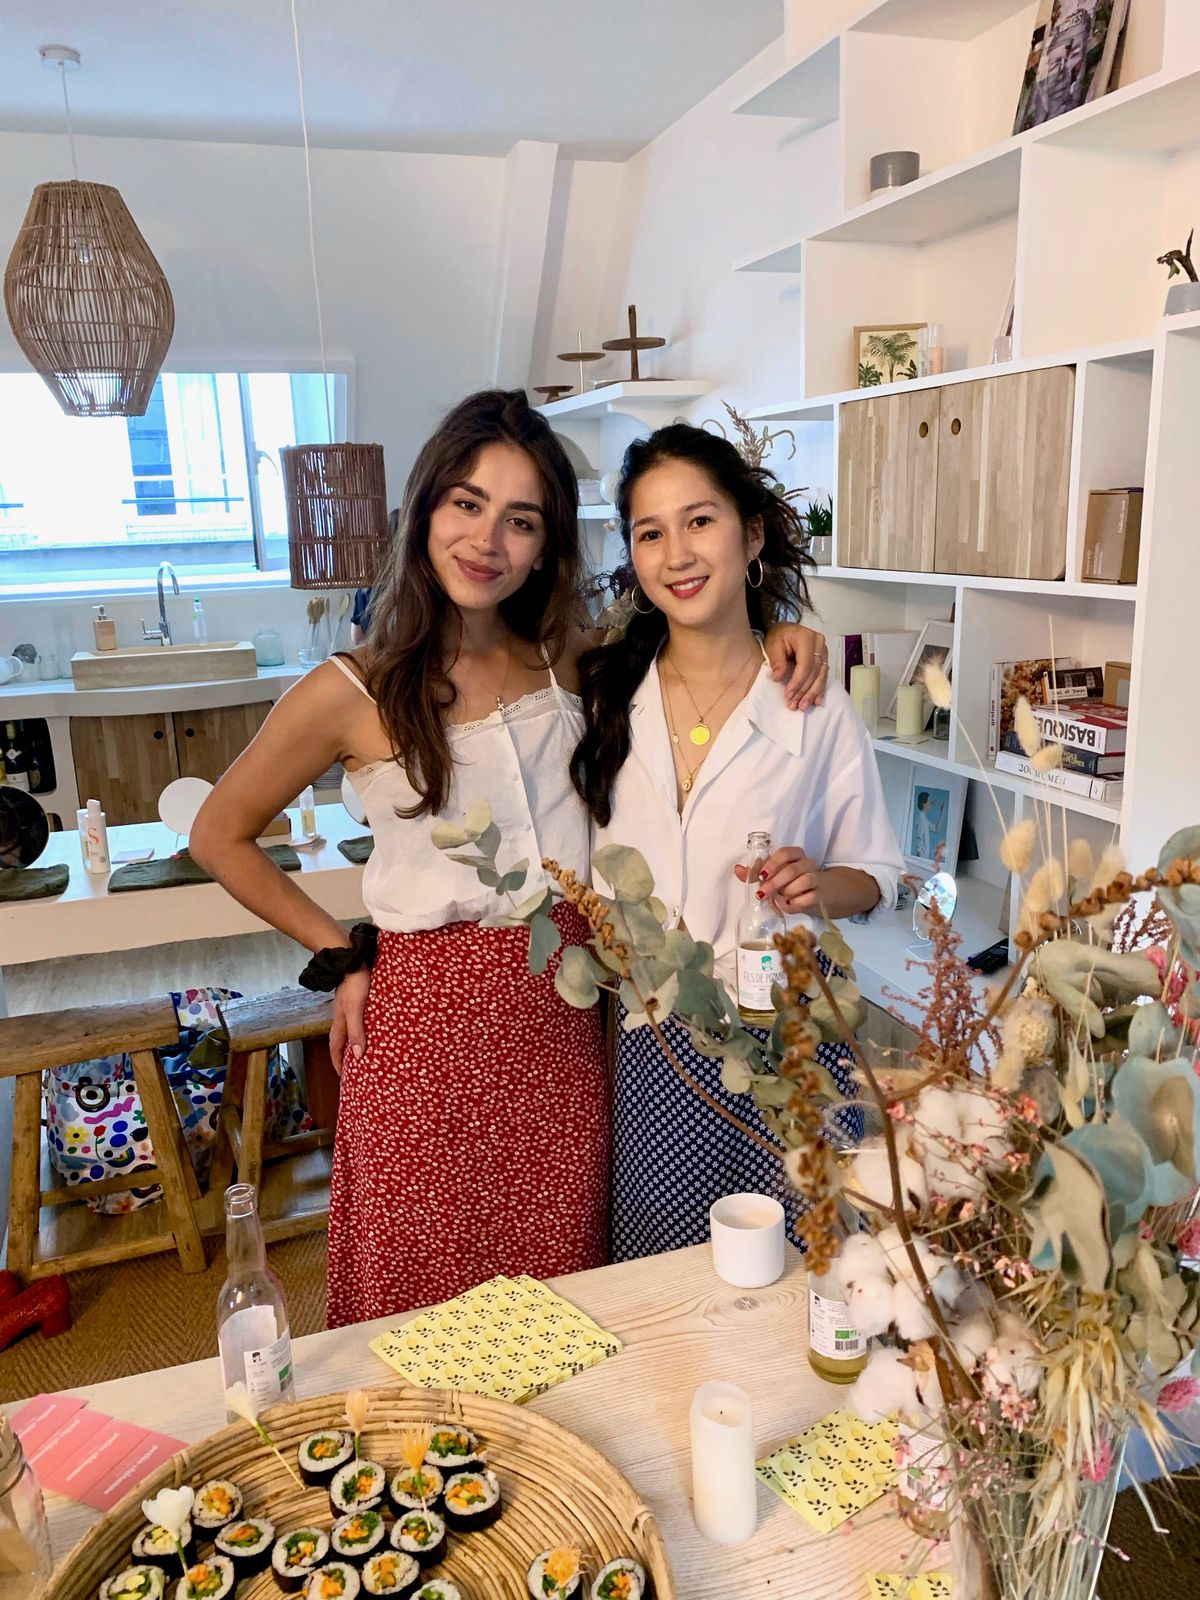 Petite Chineuse founders Hannah Stioui and Lauren Ferranti